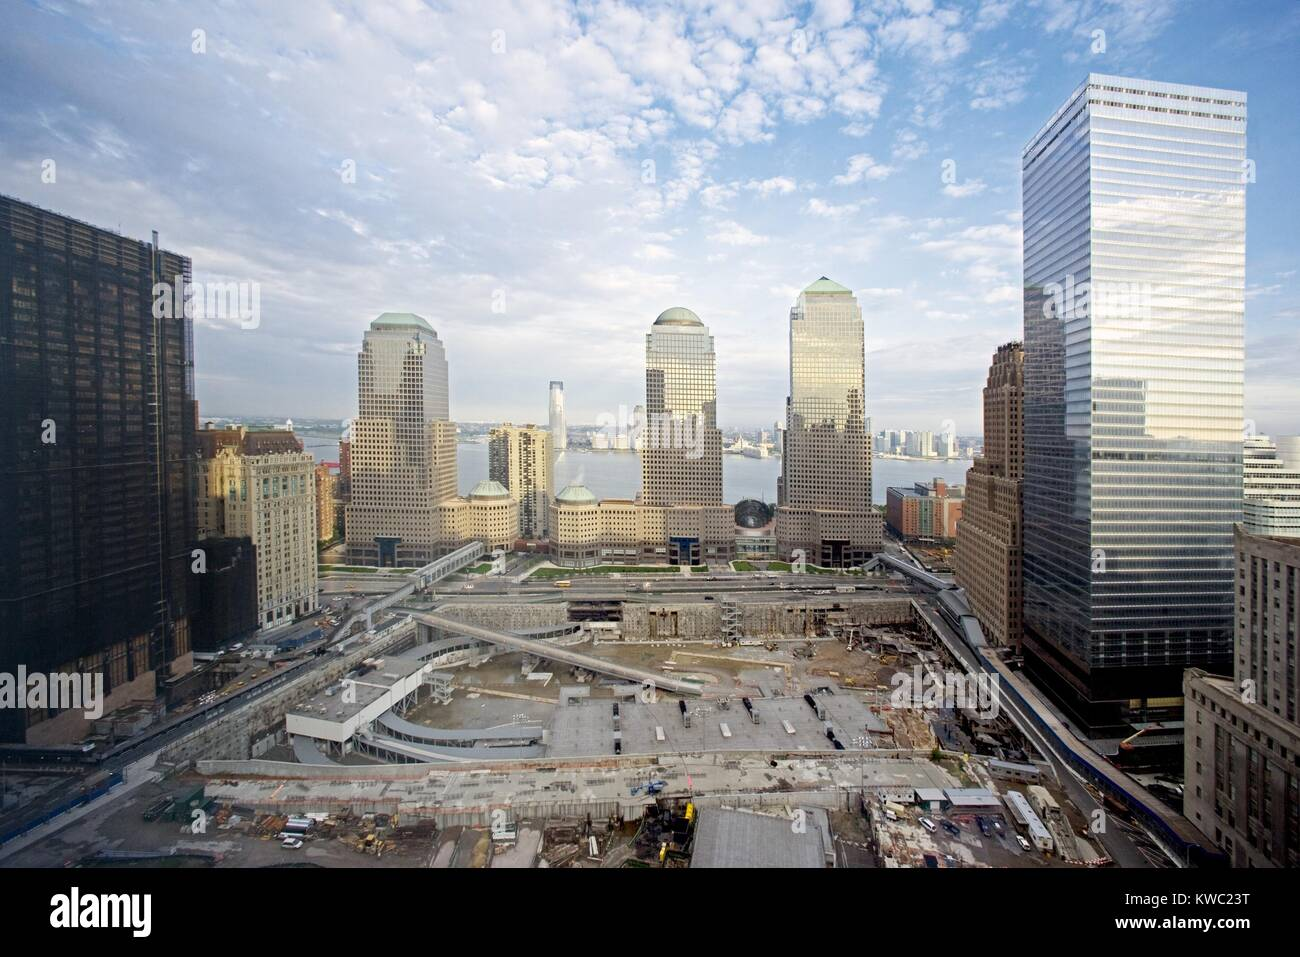 16 11 2006 Stock Photos 16 11 2006 Stock Images Alamy # Expo Muebles Wtc D'Europe